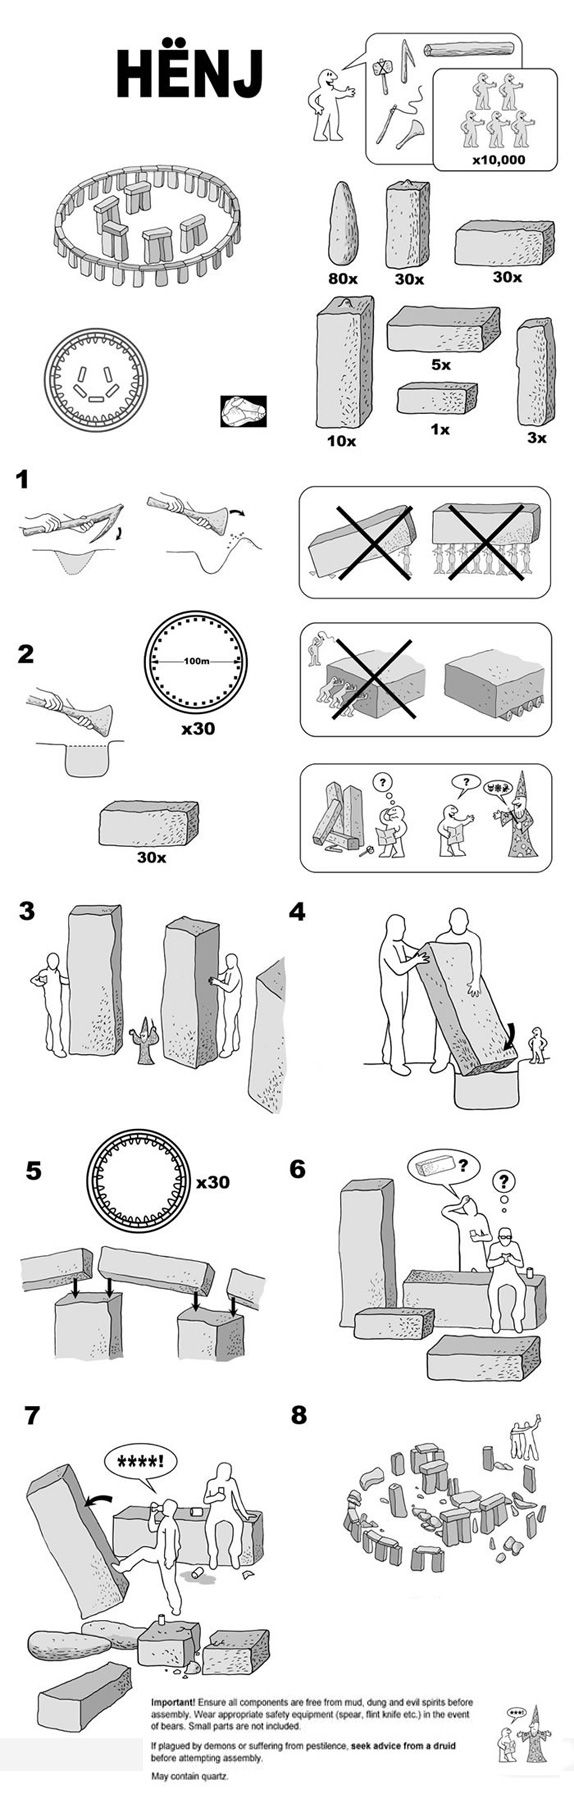 IKEA Instruction Manual for Building Stonehenge. http://9bytz.com/ikea-instruction-manual-for-building-stonehenge/